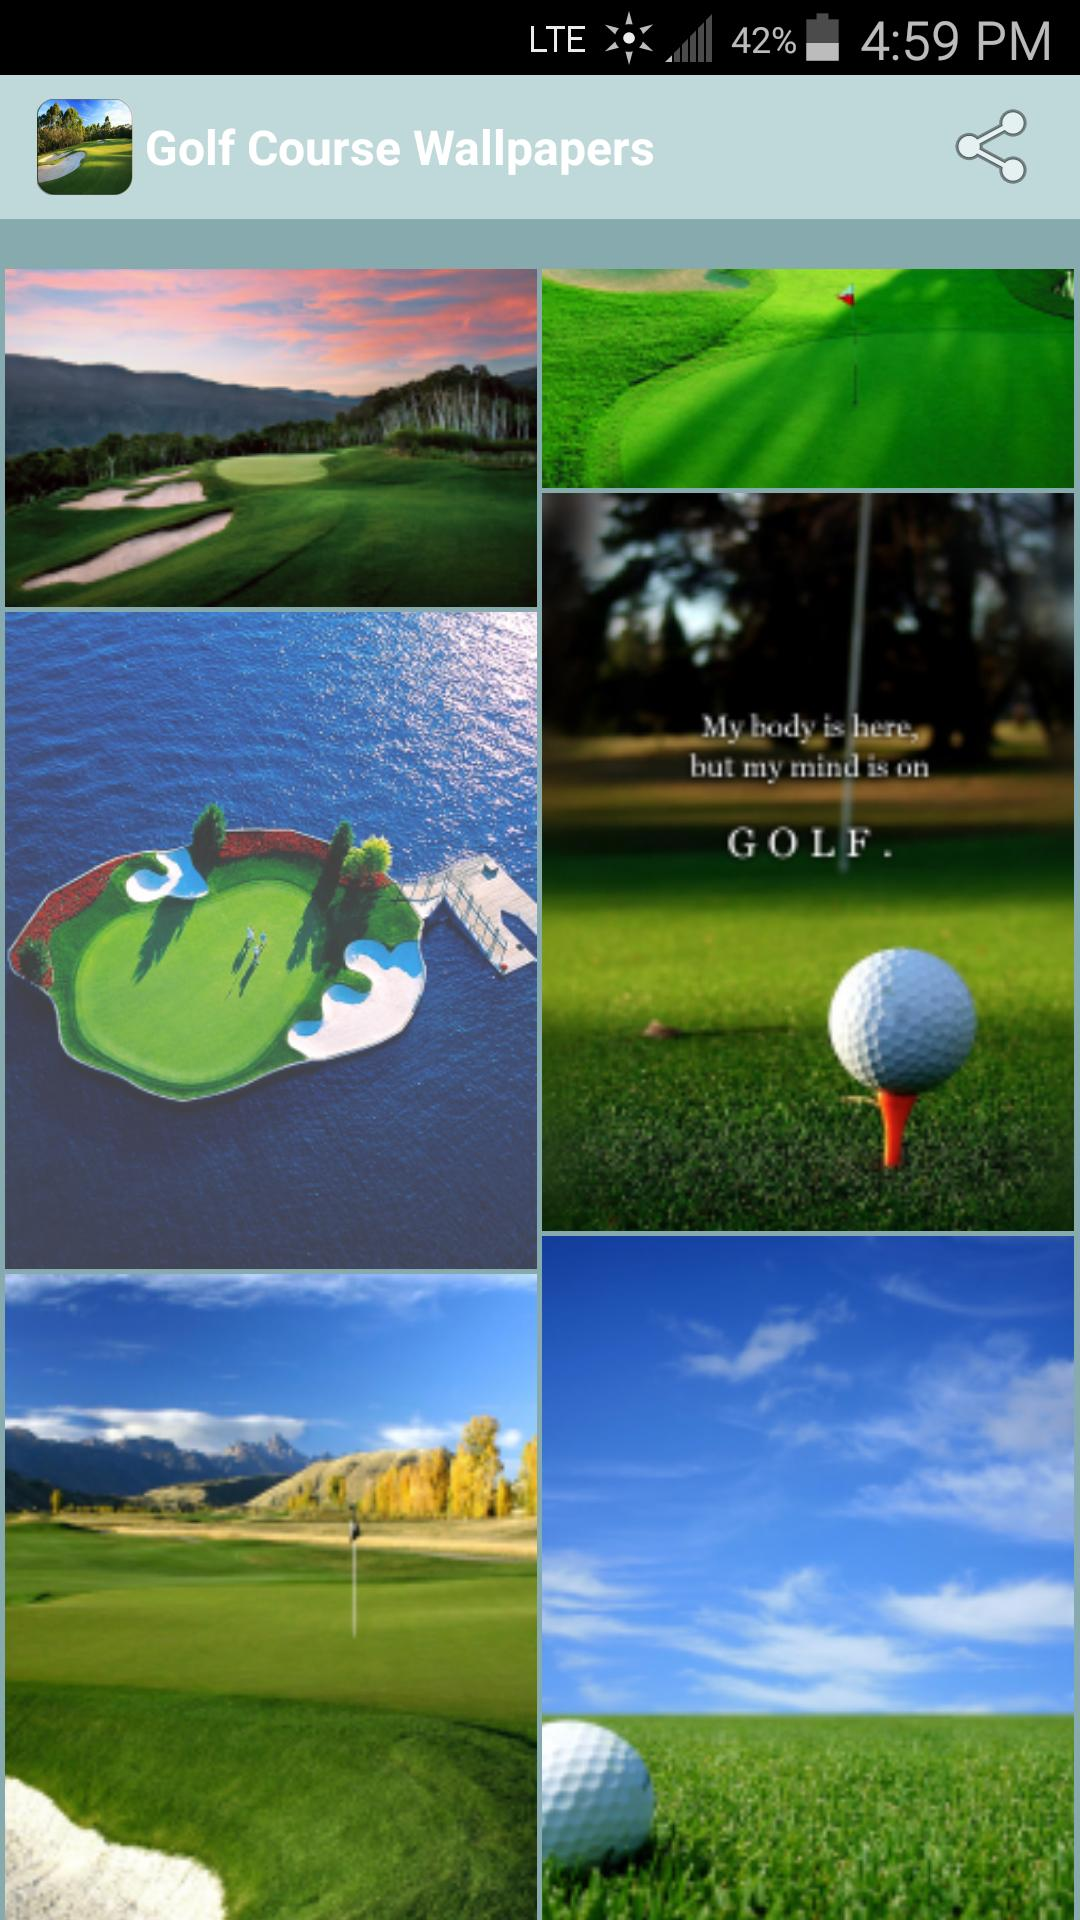 Golfcourse Wallpapers Posted By John Peltier